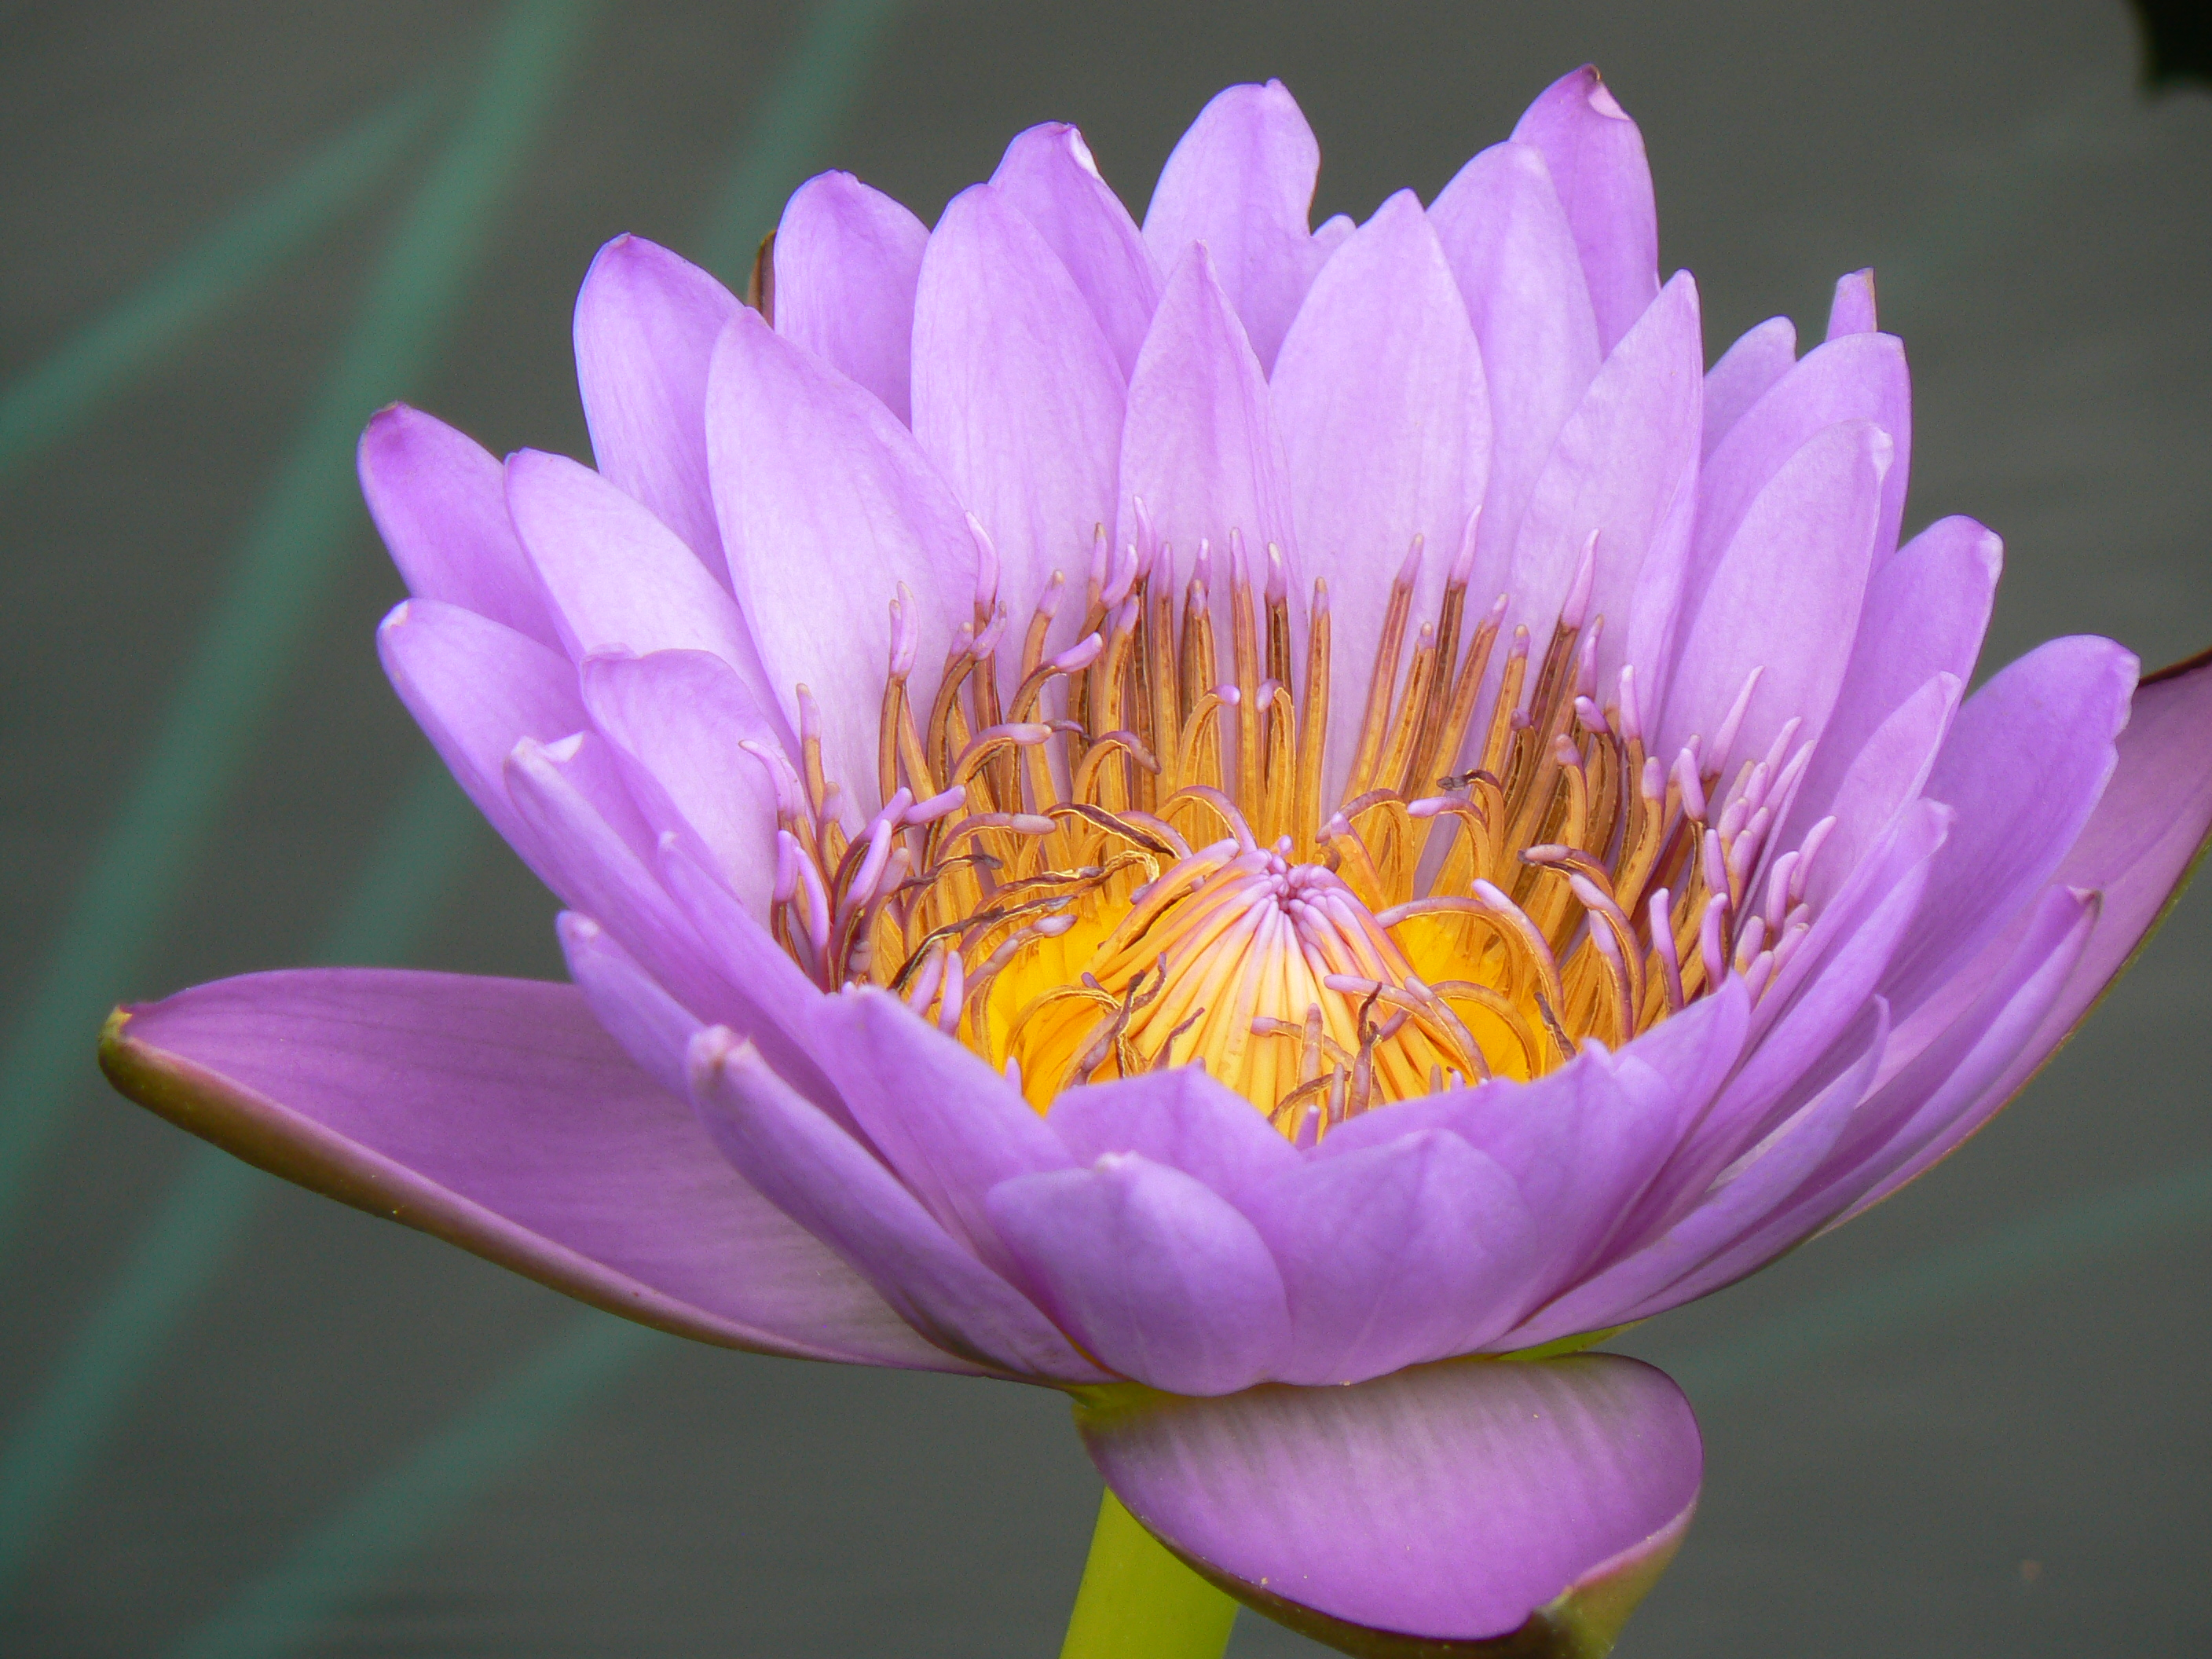 Water lily international water lily collection pics4learning water lily international water lily collection izmirmasajfo Image collections